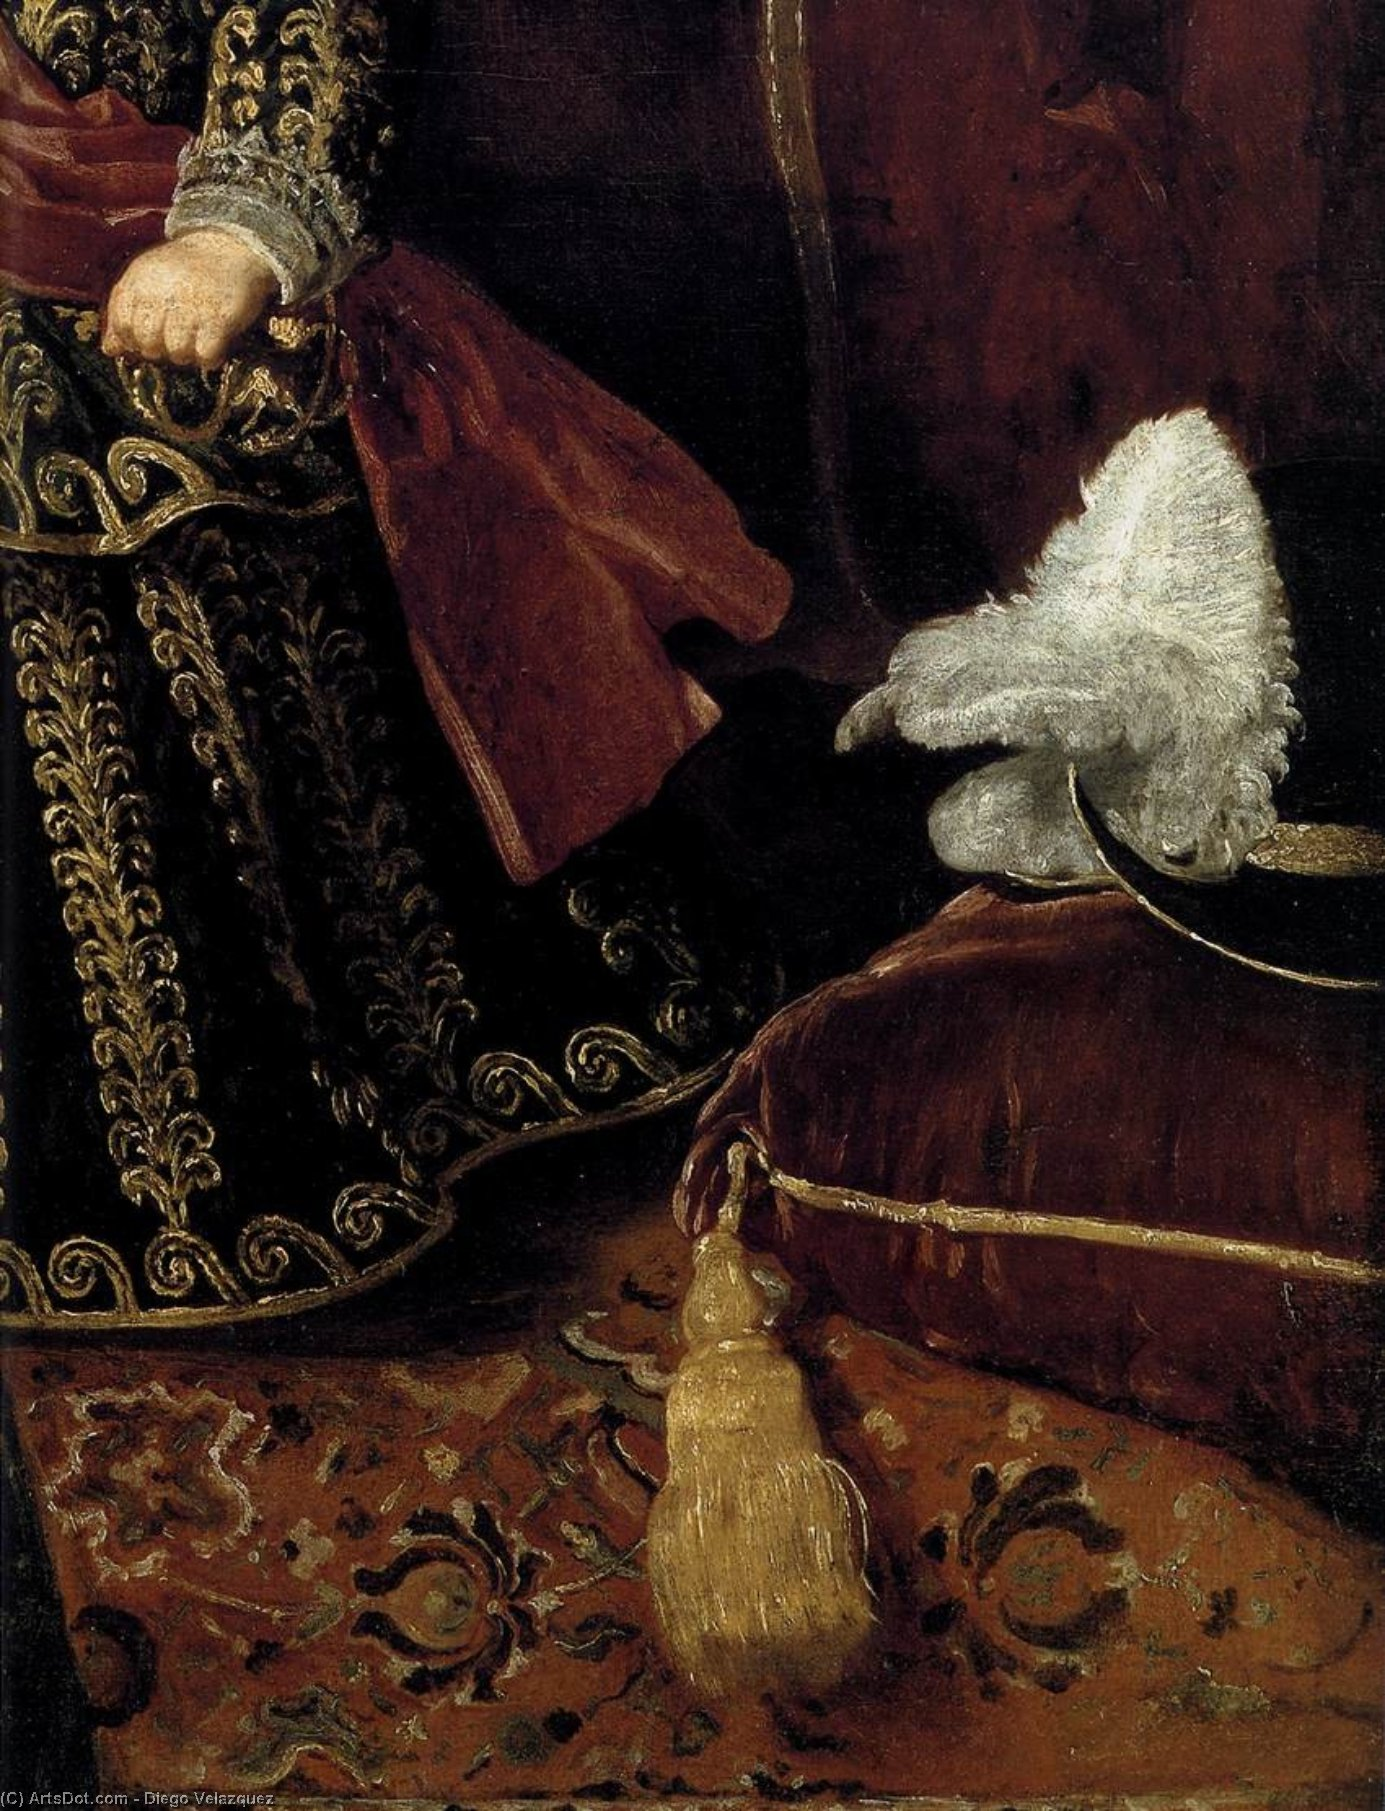 Prince Baltasar Carlos with a Dwarf (detail), Oil On Canvas by Diego Velazquez (1599-1660, Spain)